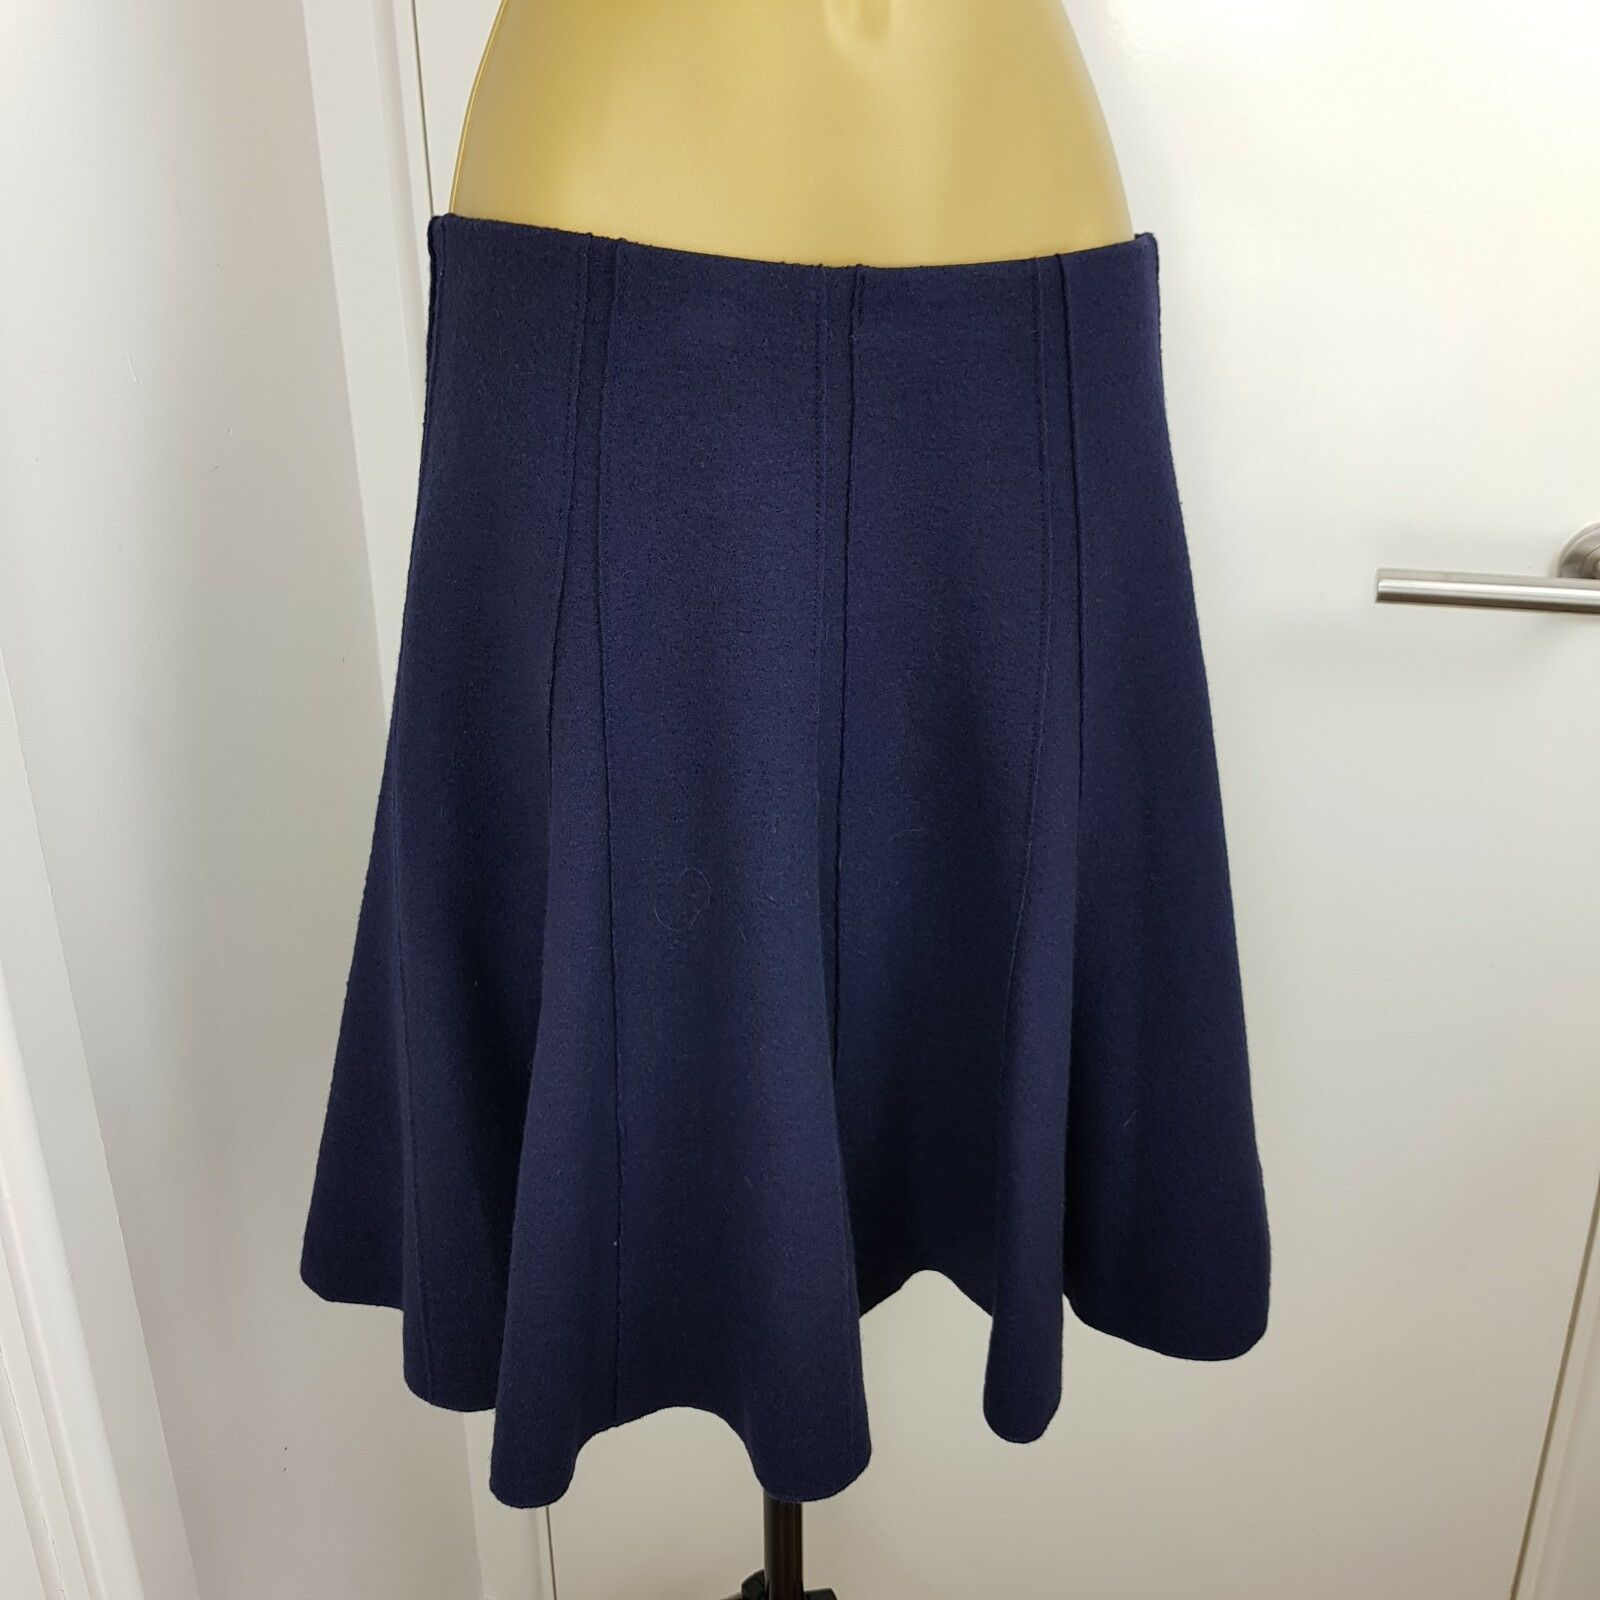 Authentic Marc Cain Skirt Midi Wool Navy Size N 2